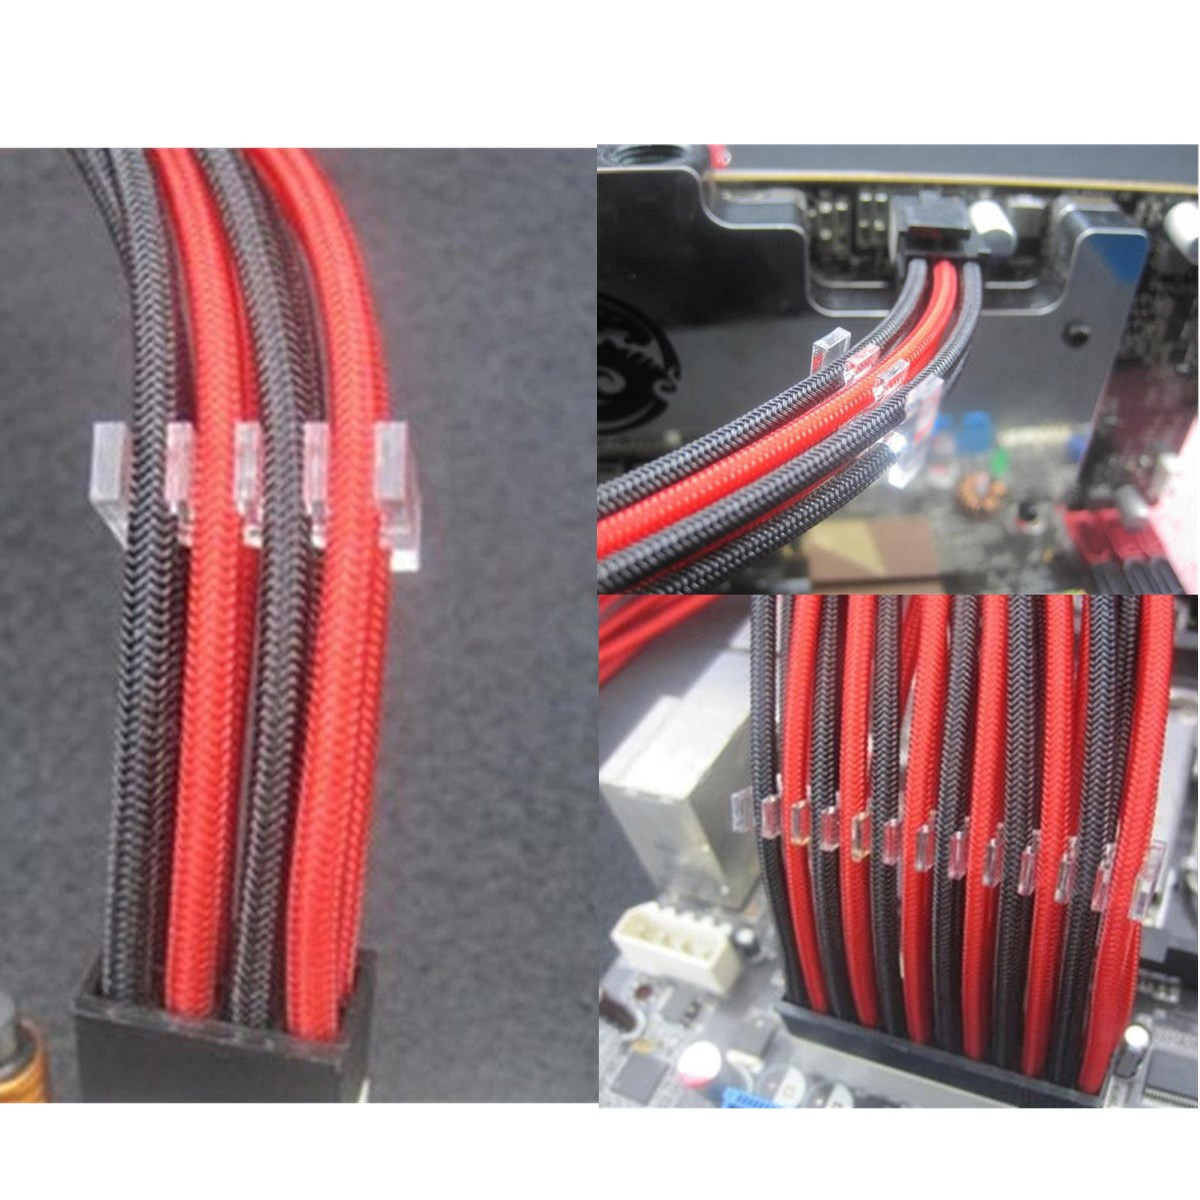 PC Cable Comb Transparent Acrylic Dresser For 3mm Cables